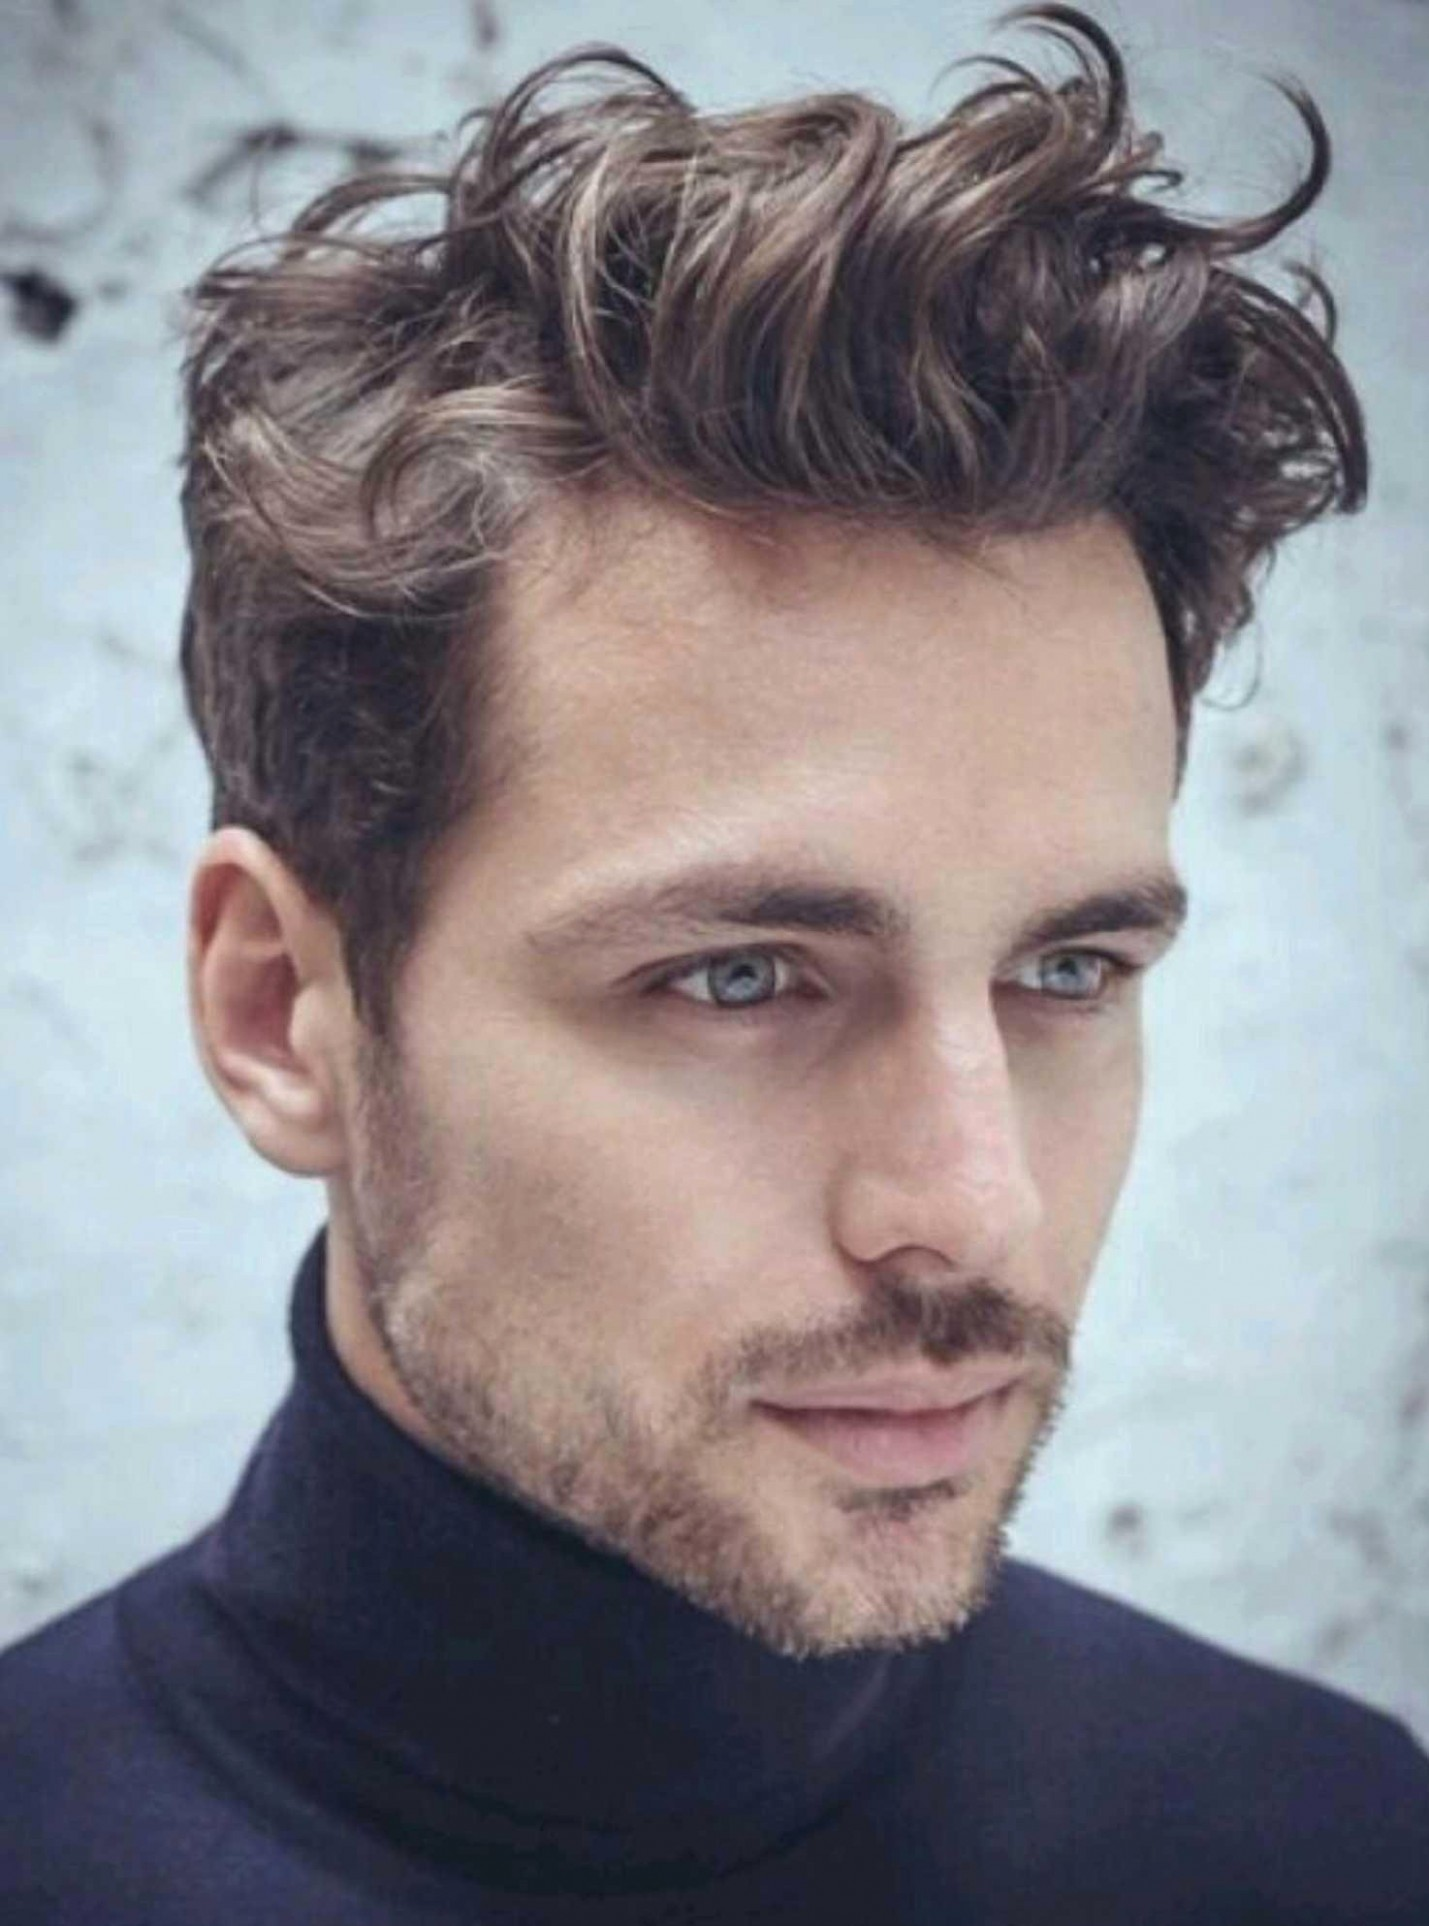 12 Best Of Hairstyle for Oblong Face Man